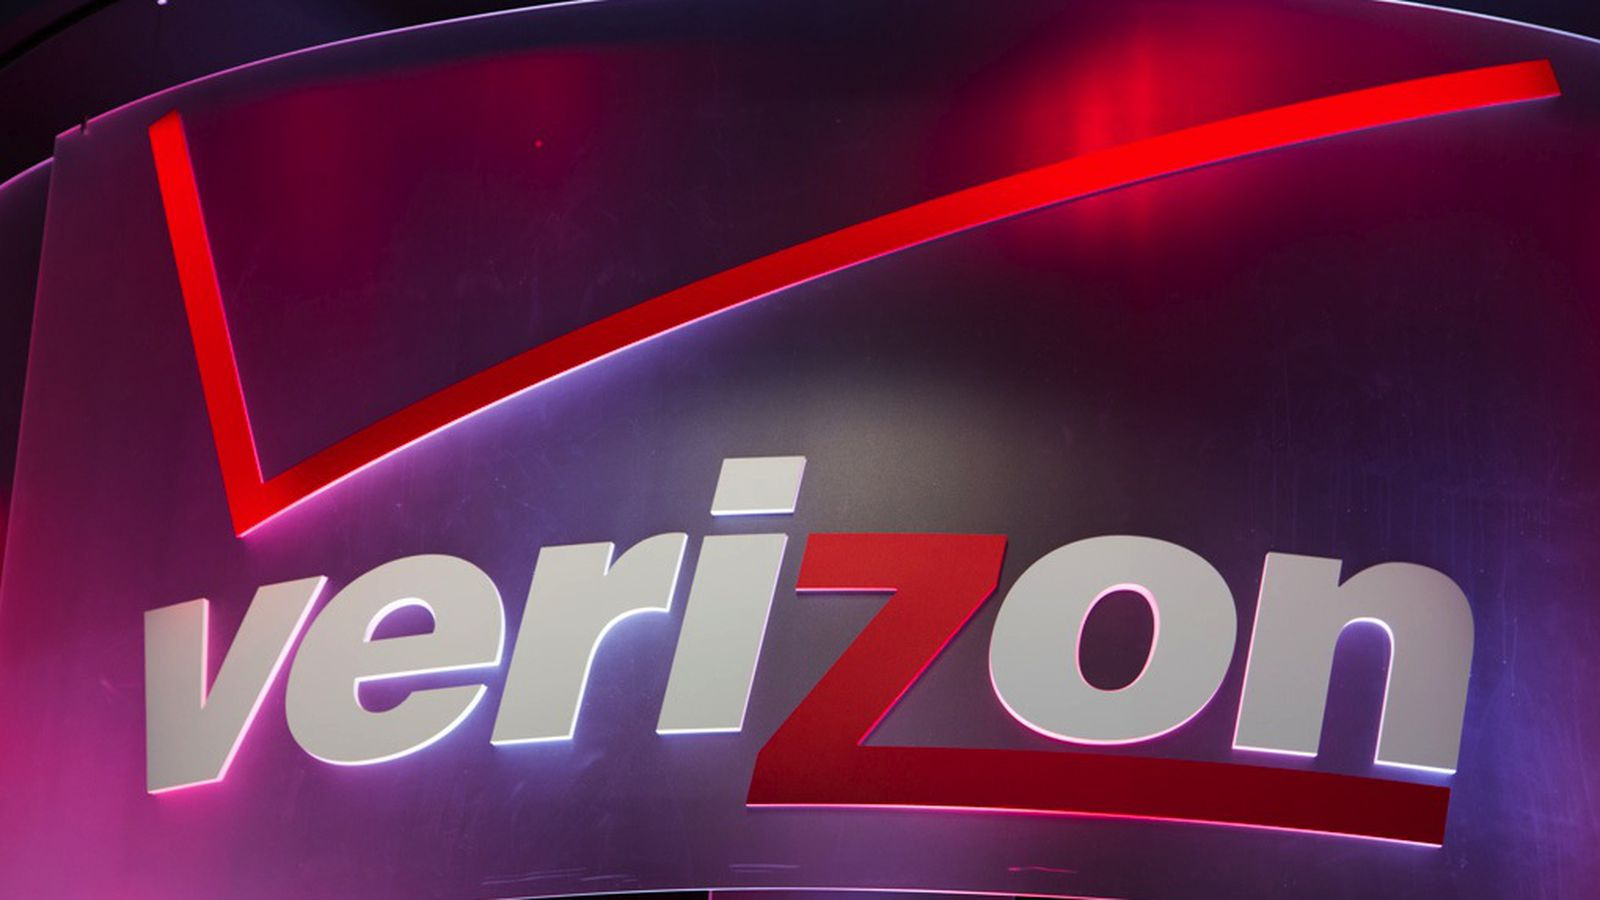 Verizon Will Give You Up To 650 To Switch From Another